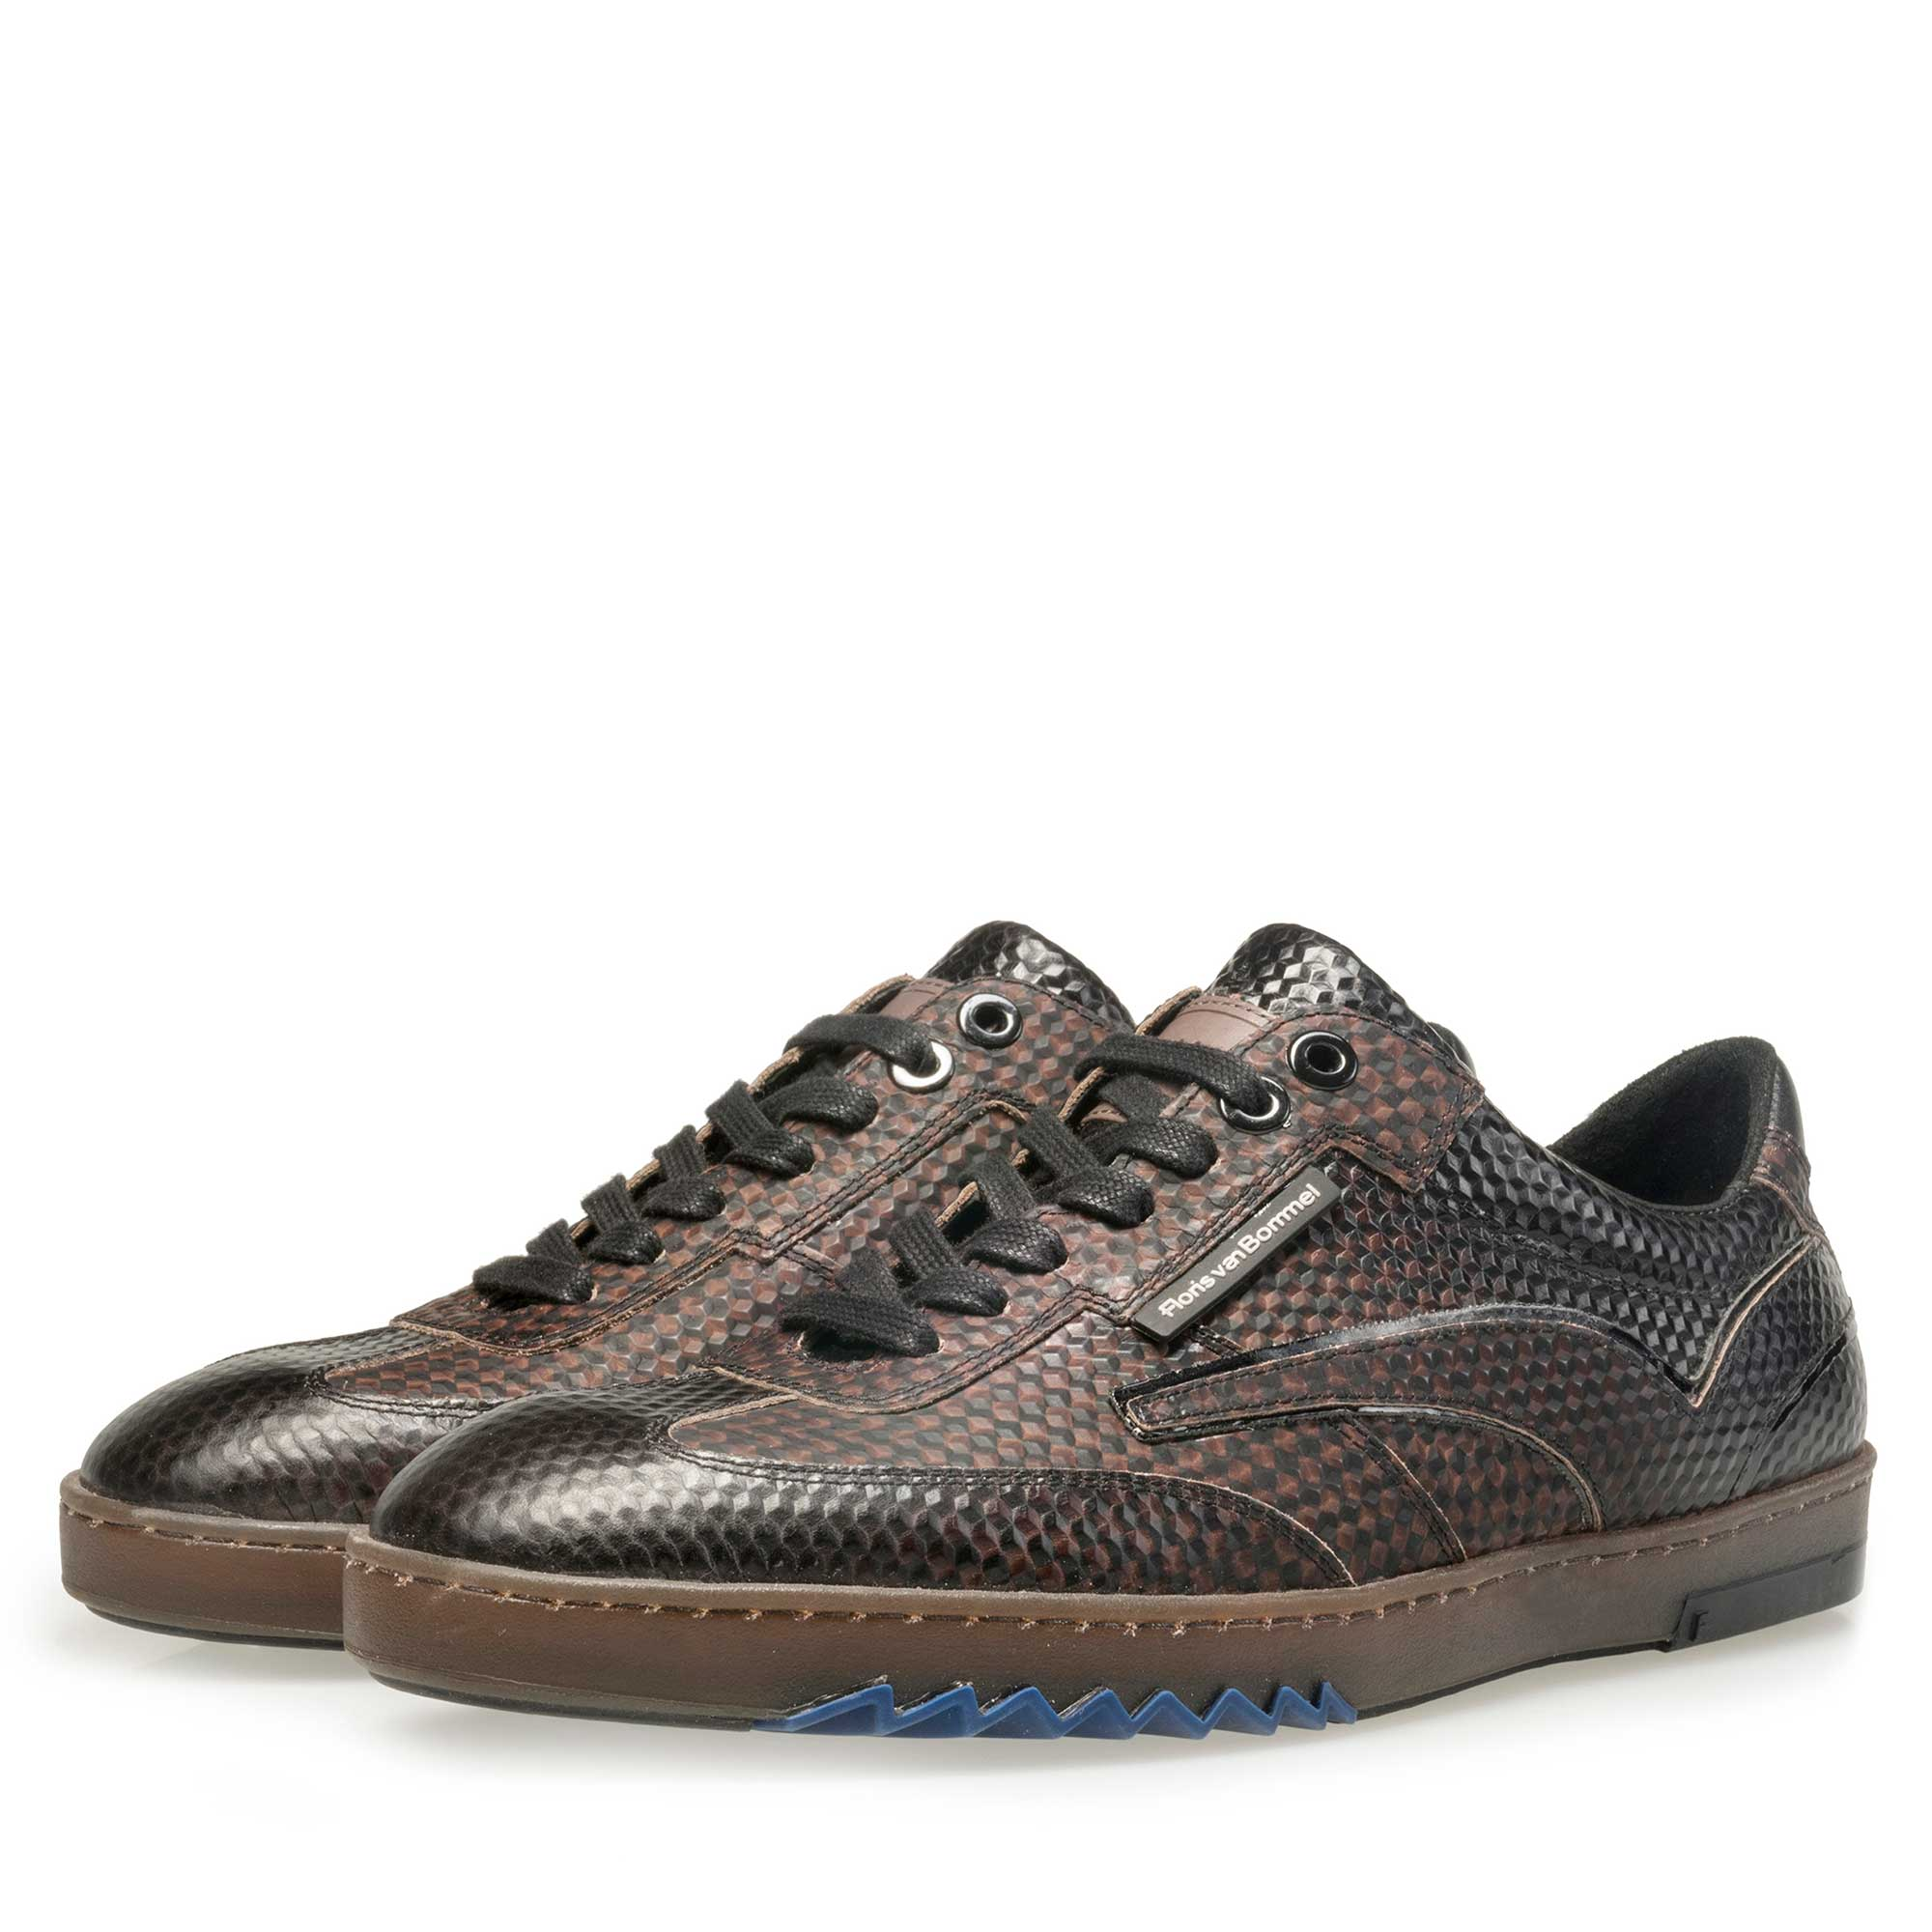 16074/24 - Floris van Bommel men's dark brown sneaker finished with a black print